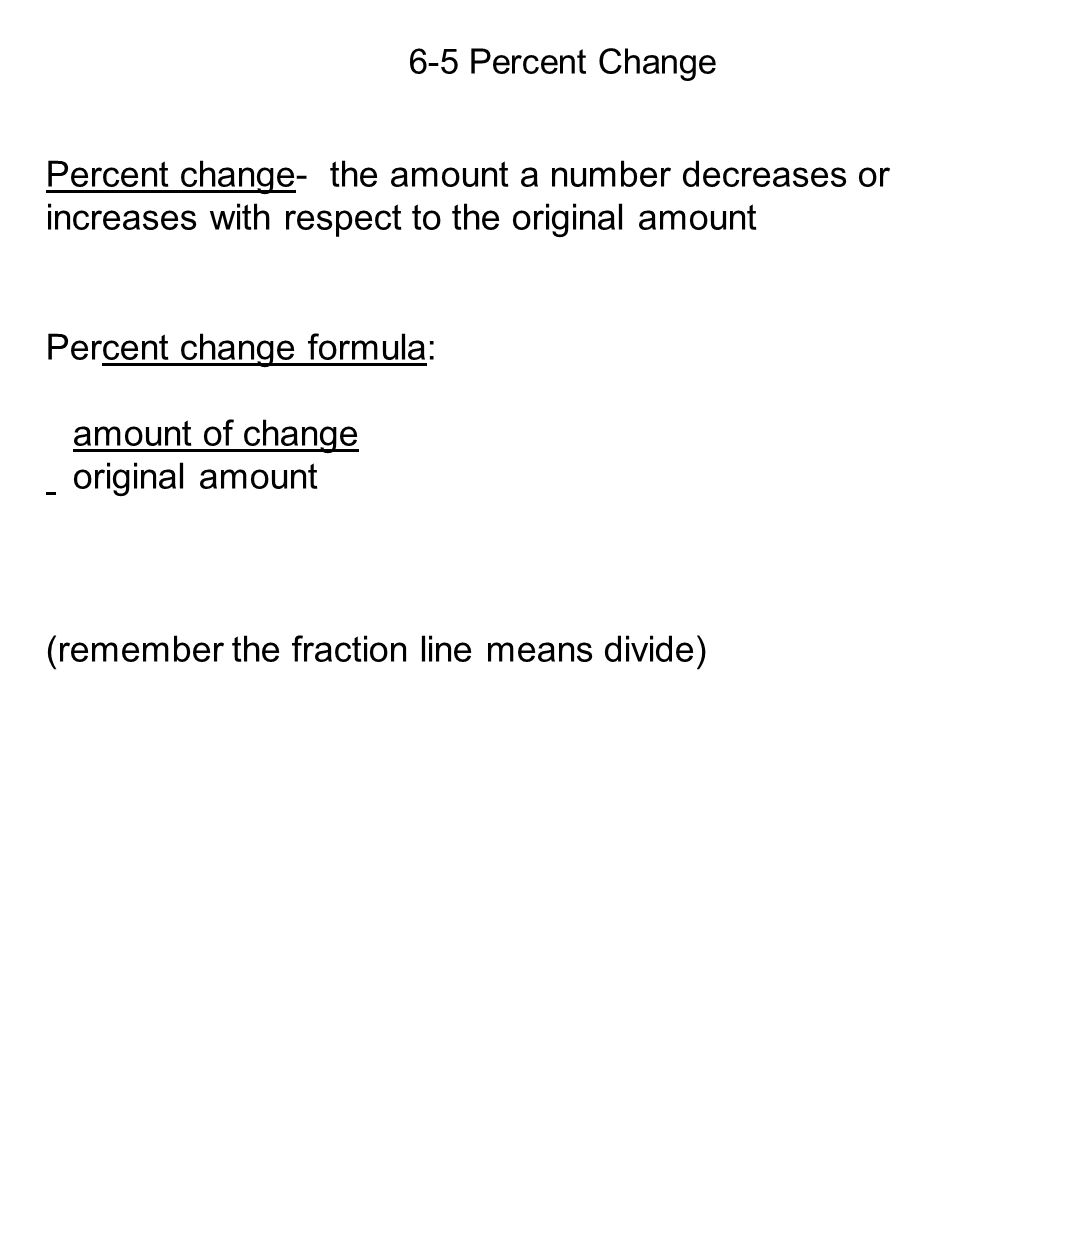 6-5 Percent Change Percent change- the amount a number decreases or increases with respect to the original amount Percent change formula: amount of change original amount (remember the fraction line means divide)